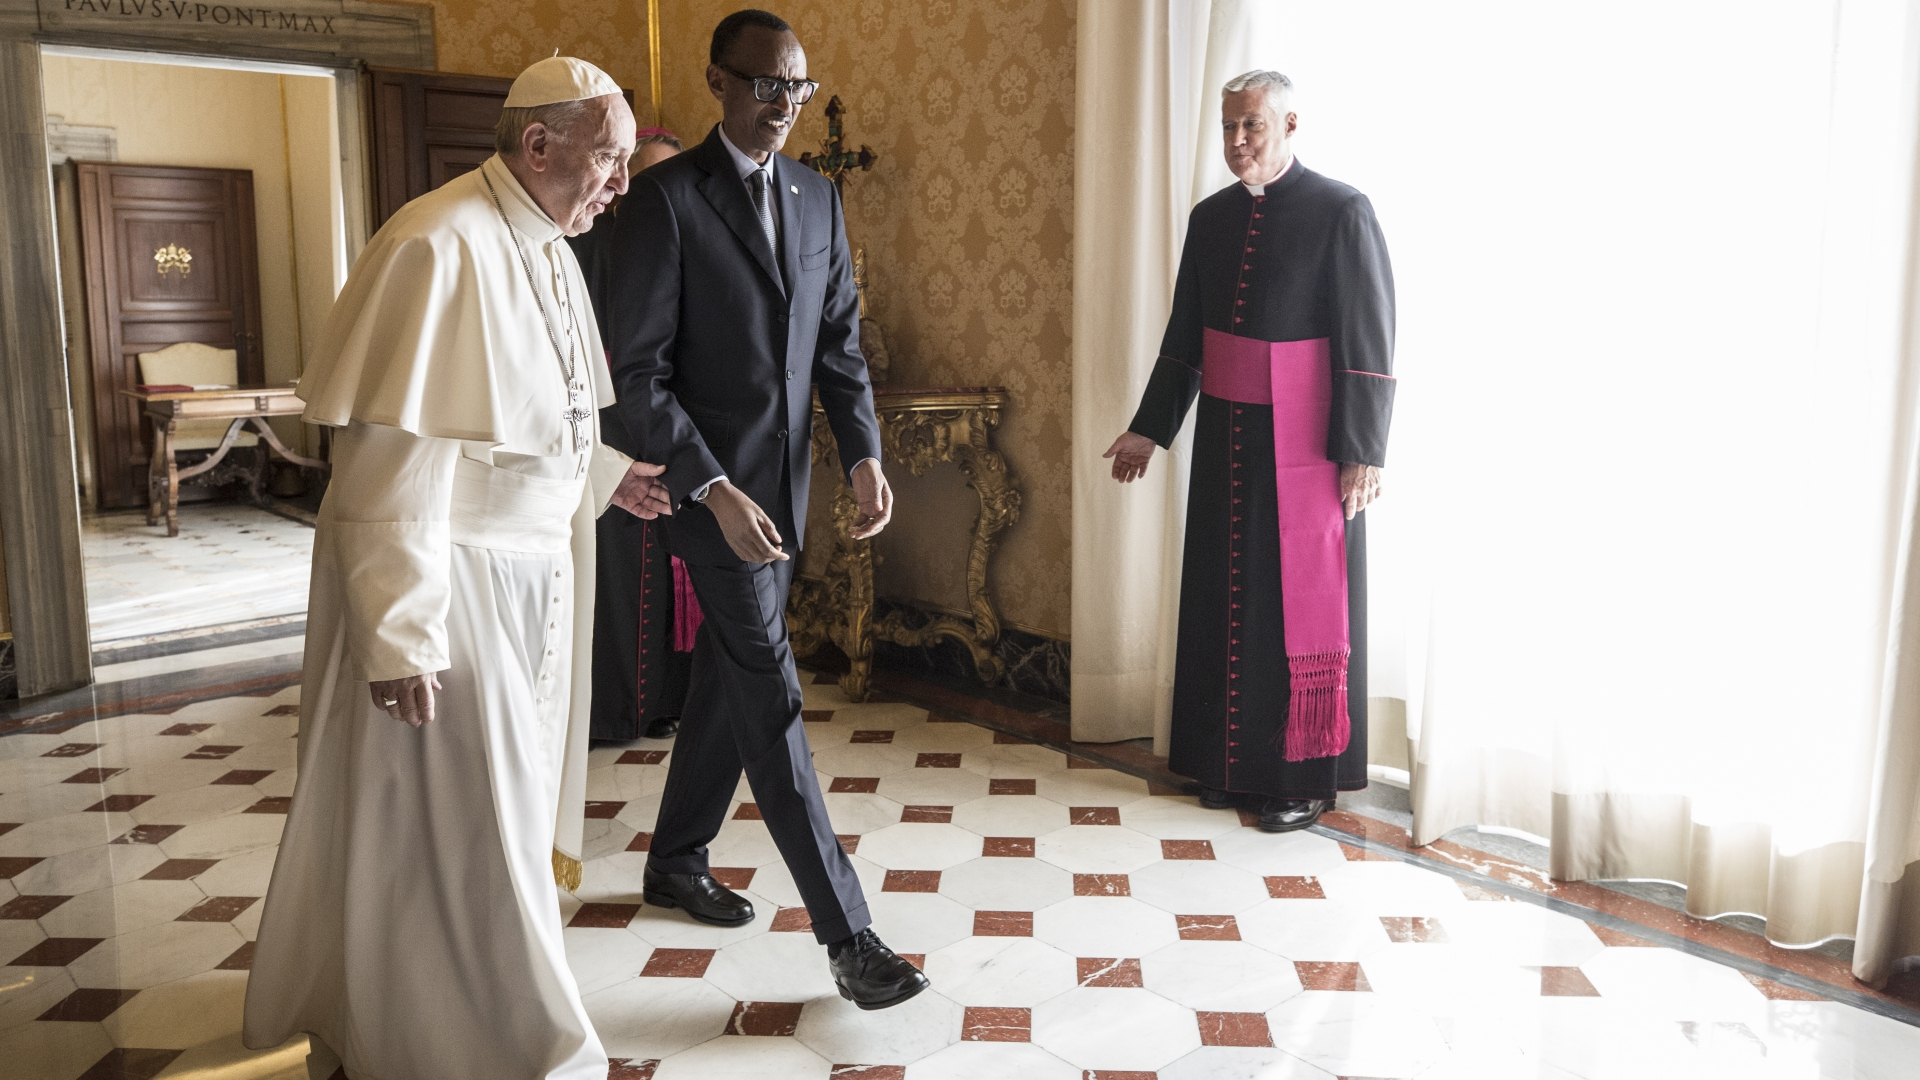 Pope Francis meeting with the President of Rwanda Paul Kagame at the Vatican on March 20, 2017. (Credit: Alessandra Benedetti/Corbis via Getty Images)